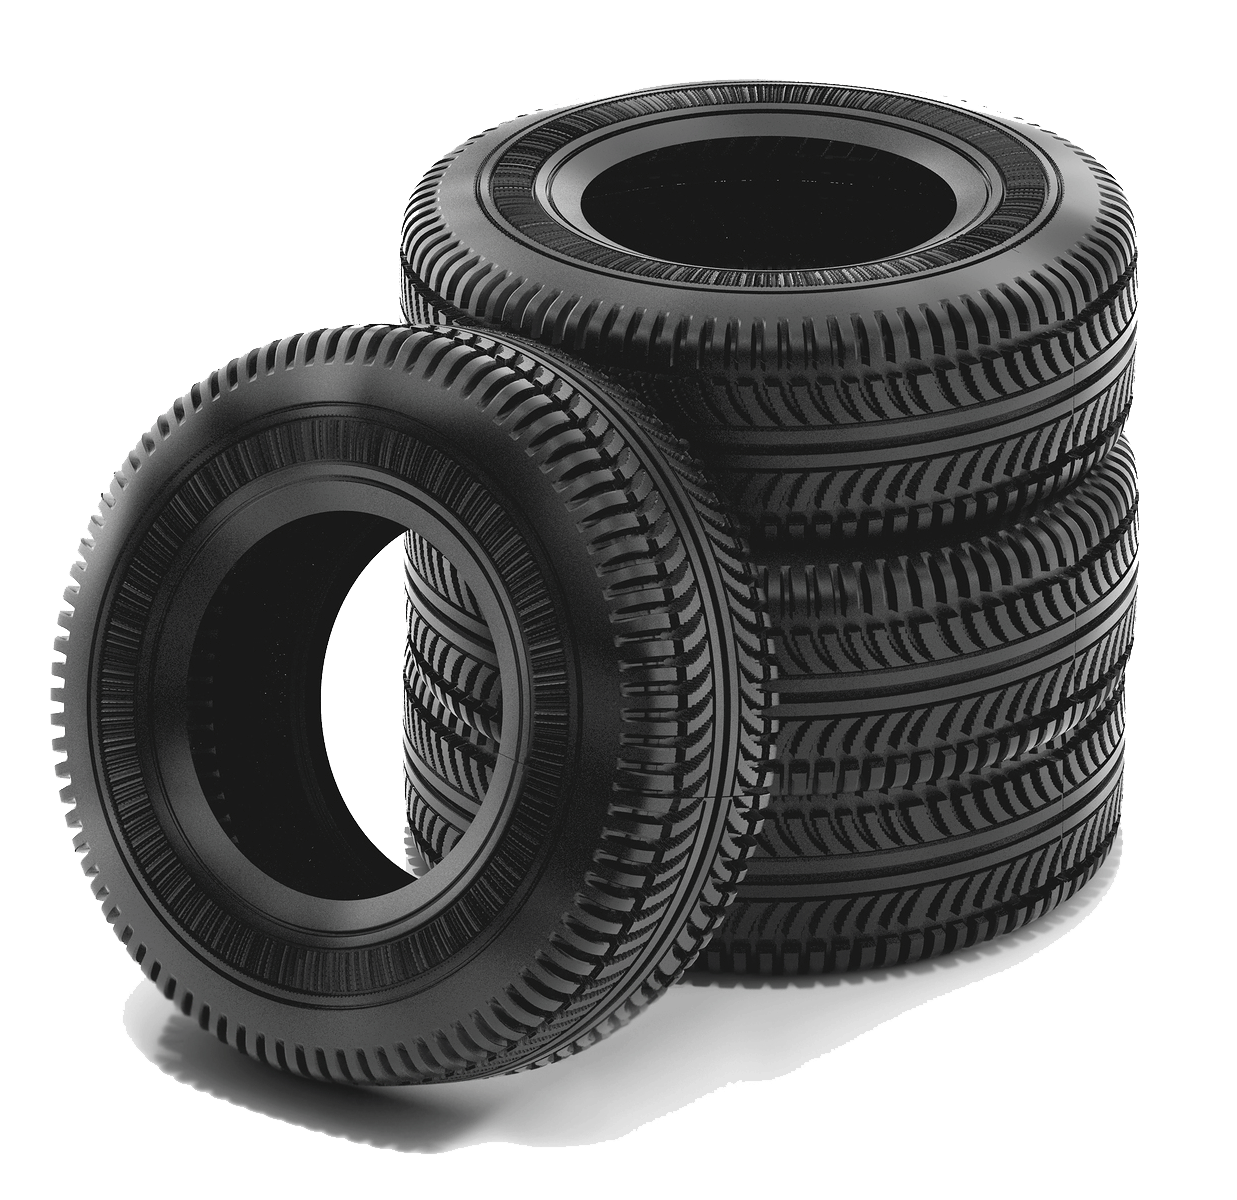 Car tires png. Tire images free download